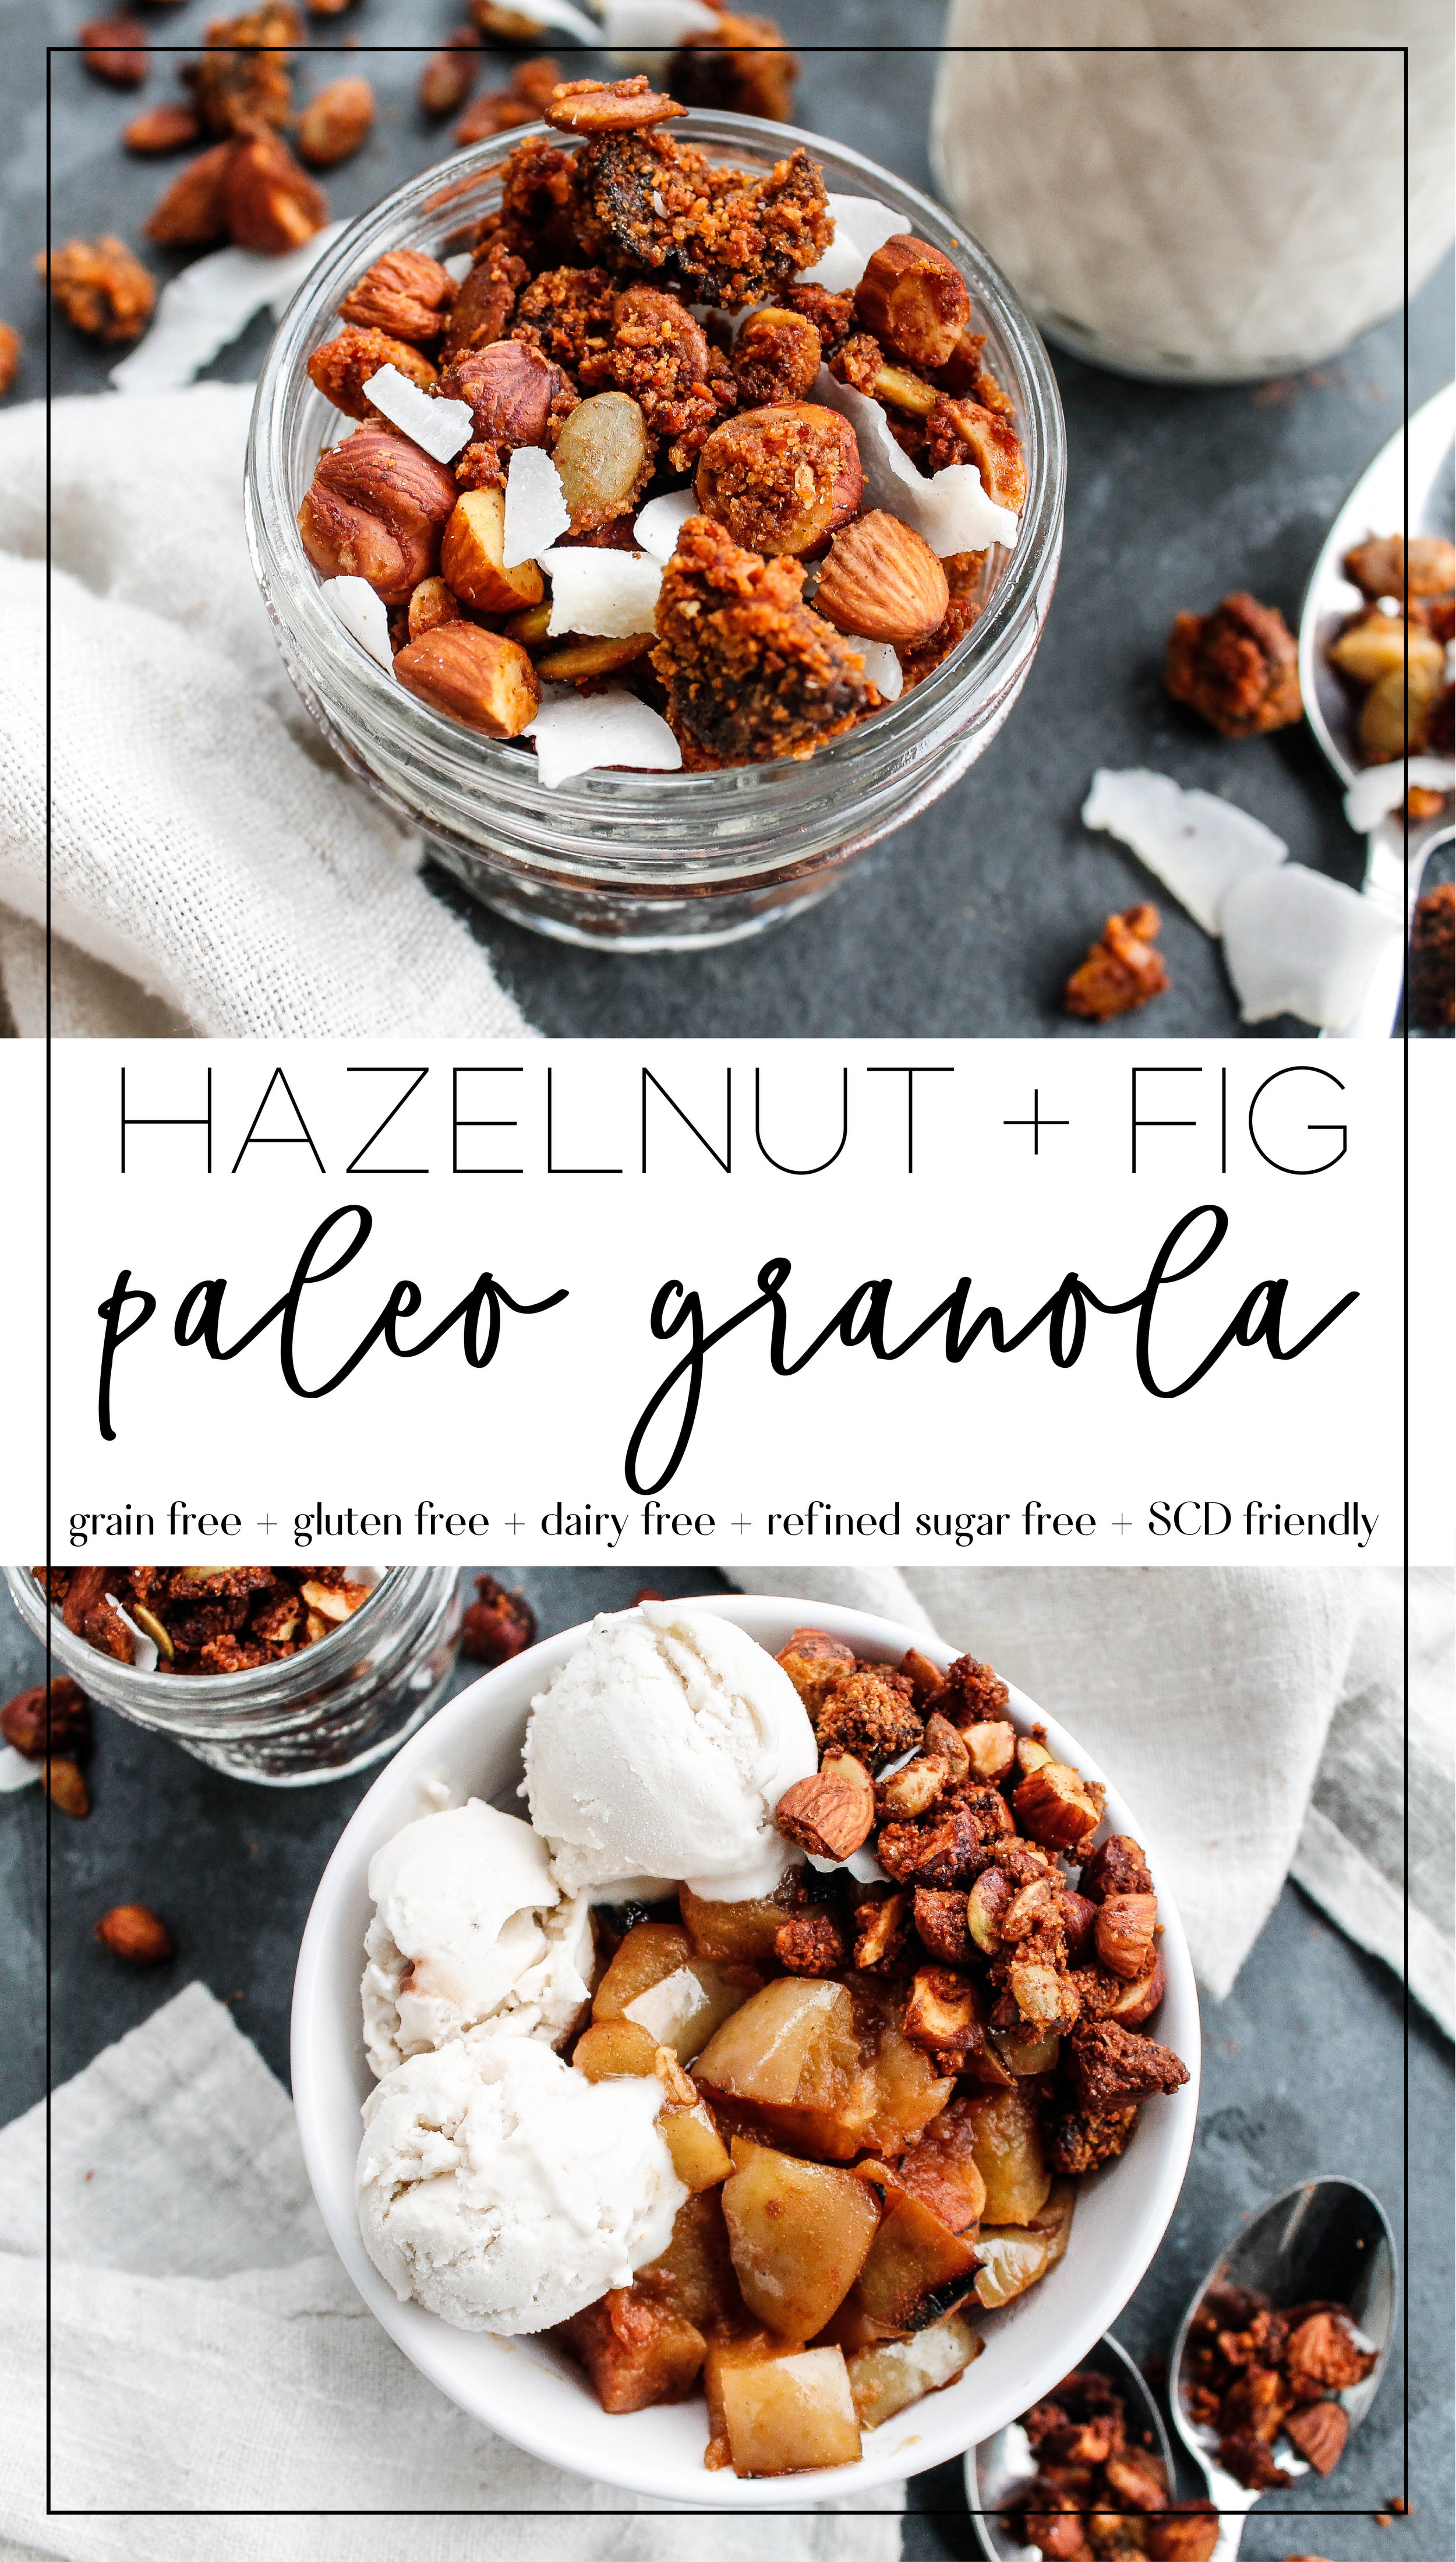 Paleo Hazelnut Fig Granola    This grain free granola is full of nutrients, protein and healthy fats to keep you satisfied! It's also dairy free, refined sugar free and Specific Carbohydrate Diet friendly, making it a great low inflammation and allergy friendly breakfast or snack    #specificcarbohydratediet #grainfreegranola #paleogranola #paleobreakfast #paleorecipes #scddiet    plentyandwell.com